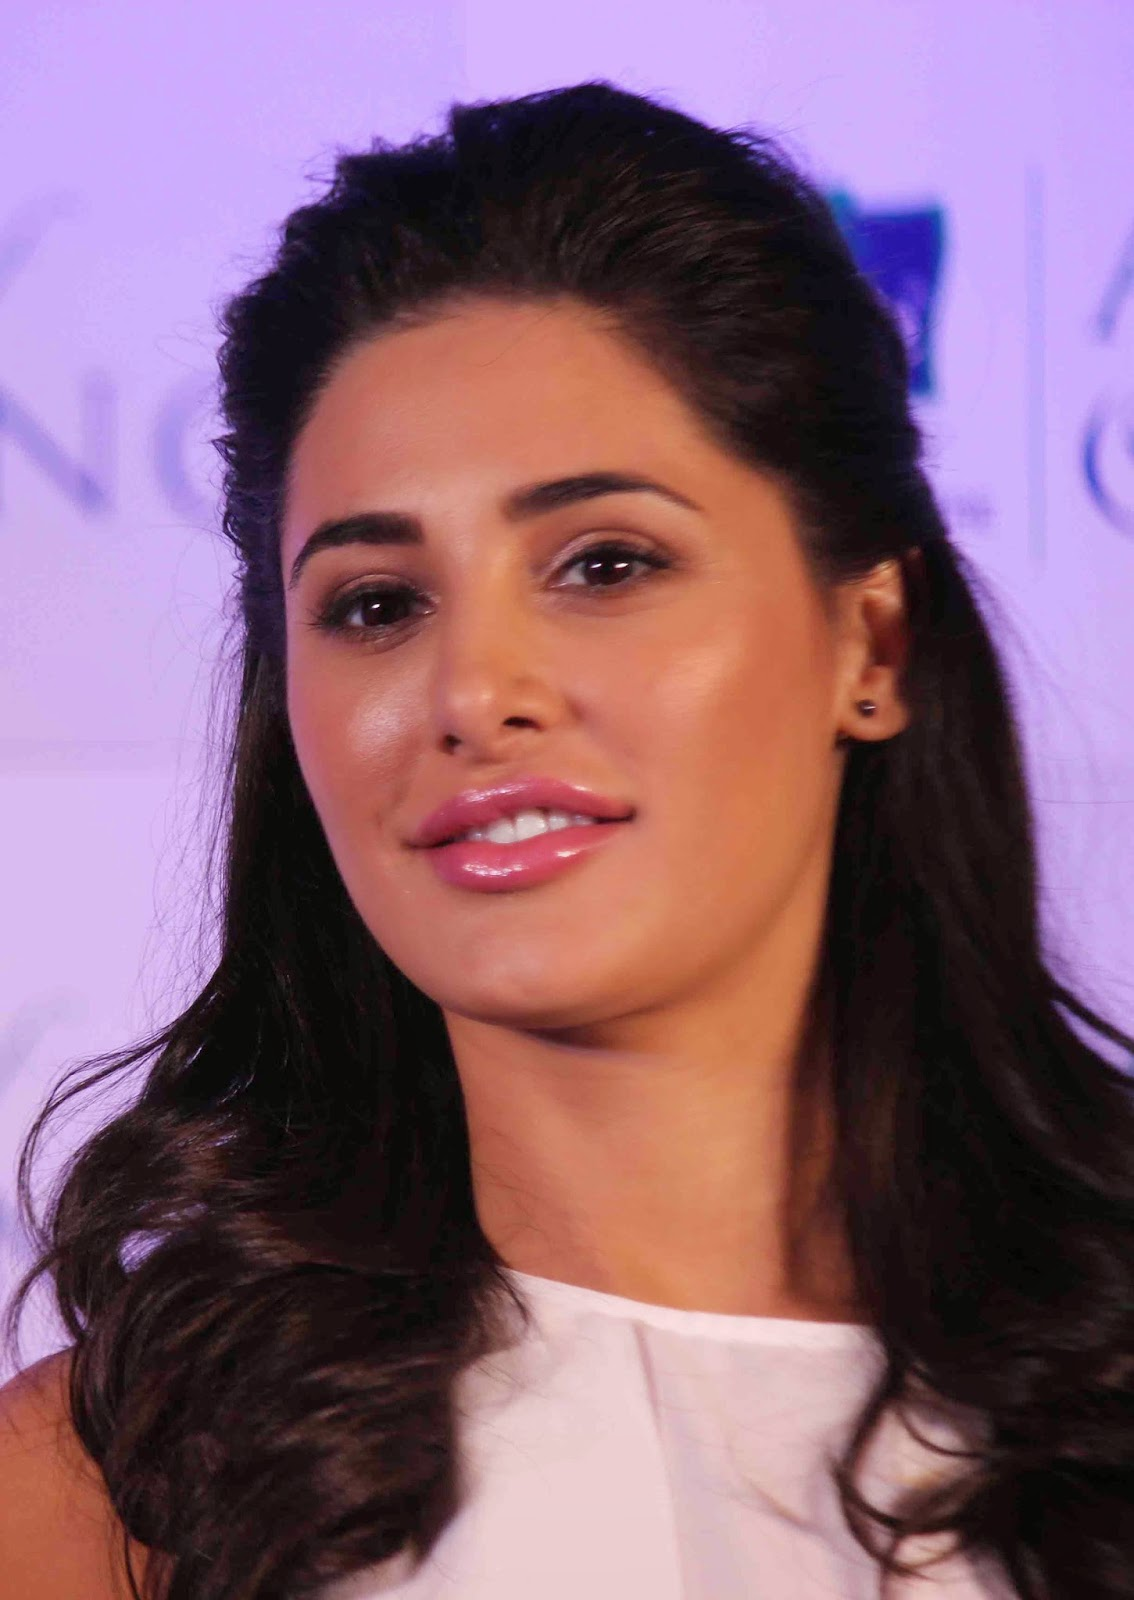 Glamorous Nargis Fakhri Hot Photos In White Dress